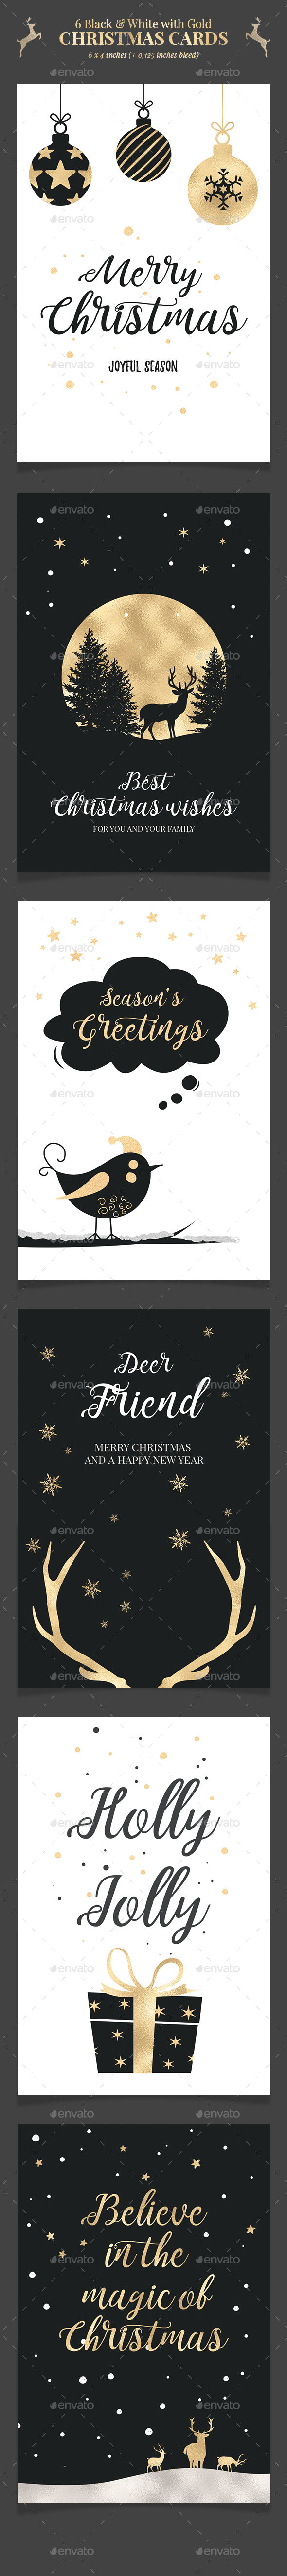 6 Black & White Christmas Cards / Backgrounds PSD - Christmas Greeting Cards